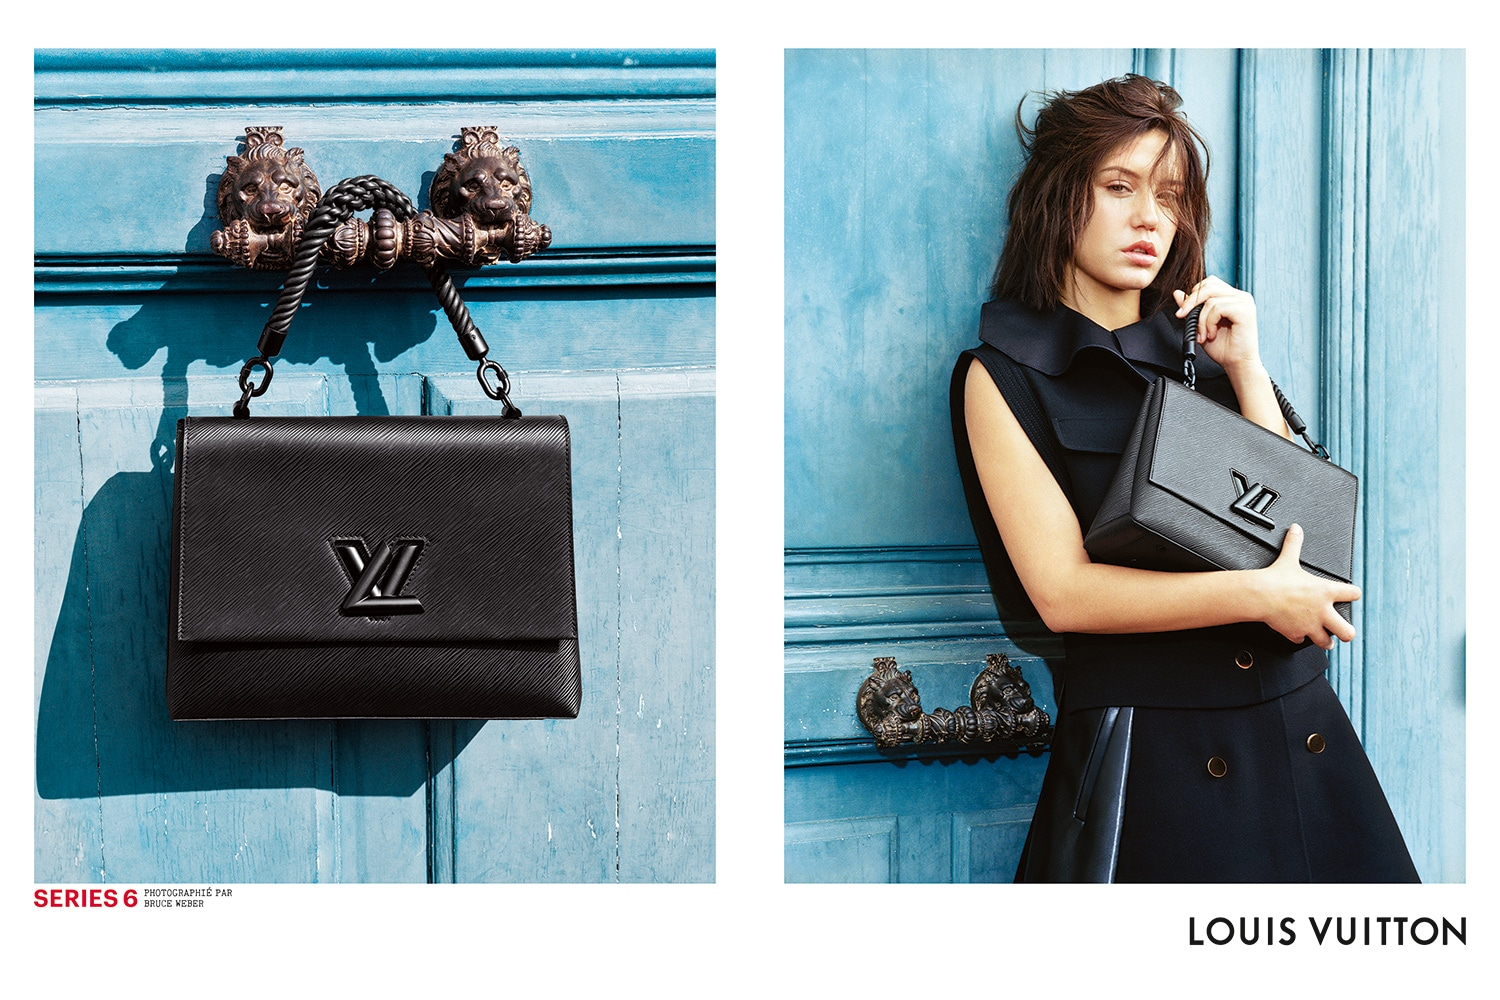 louis vuitton spring summer 2017 series 6 ad campaign spotted fashion. Black Bedroom Furniture Sets. Home Design Ideas